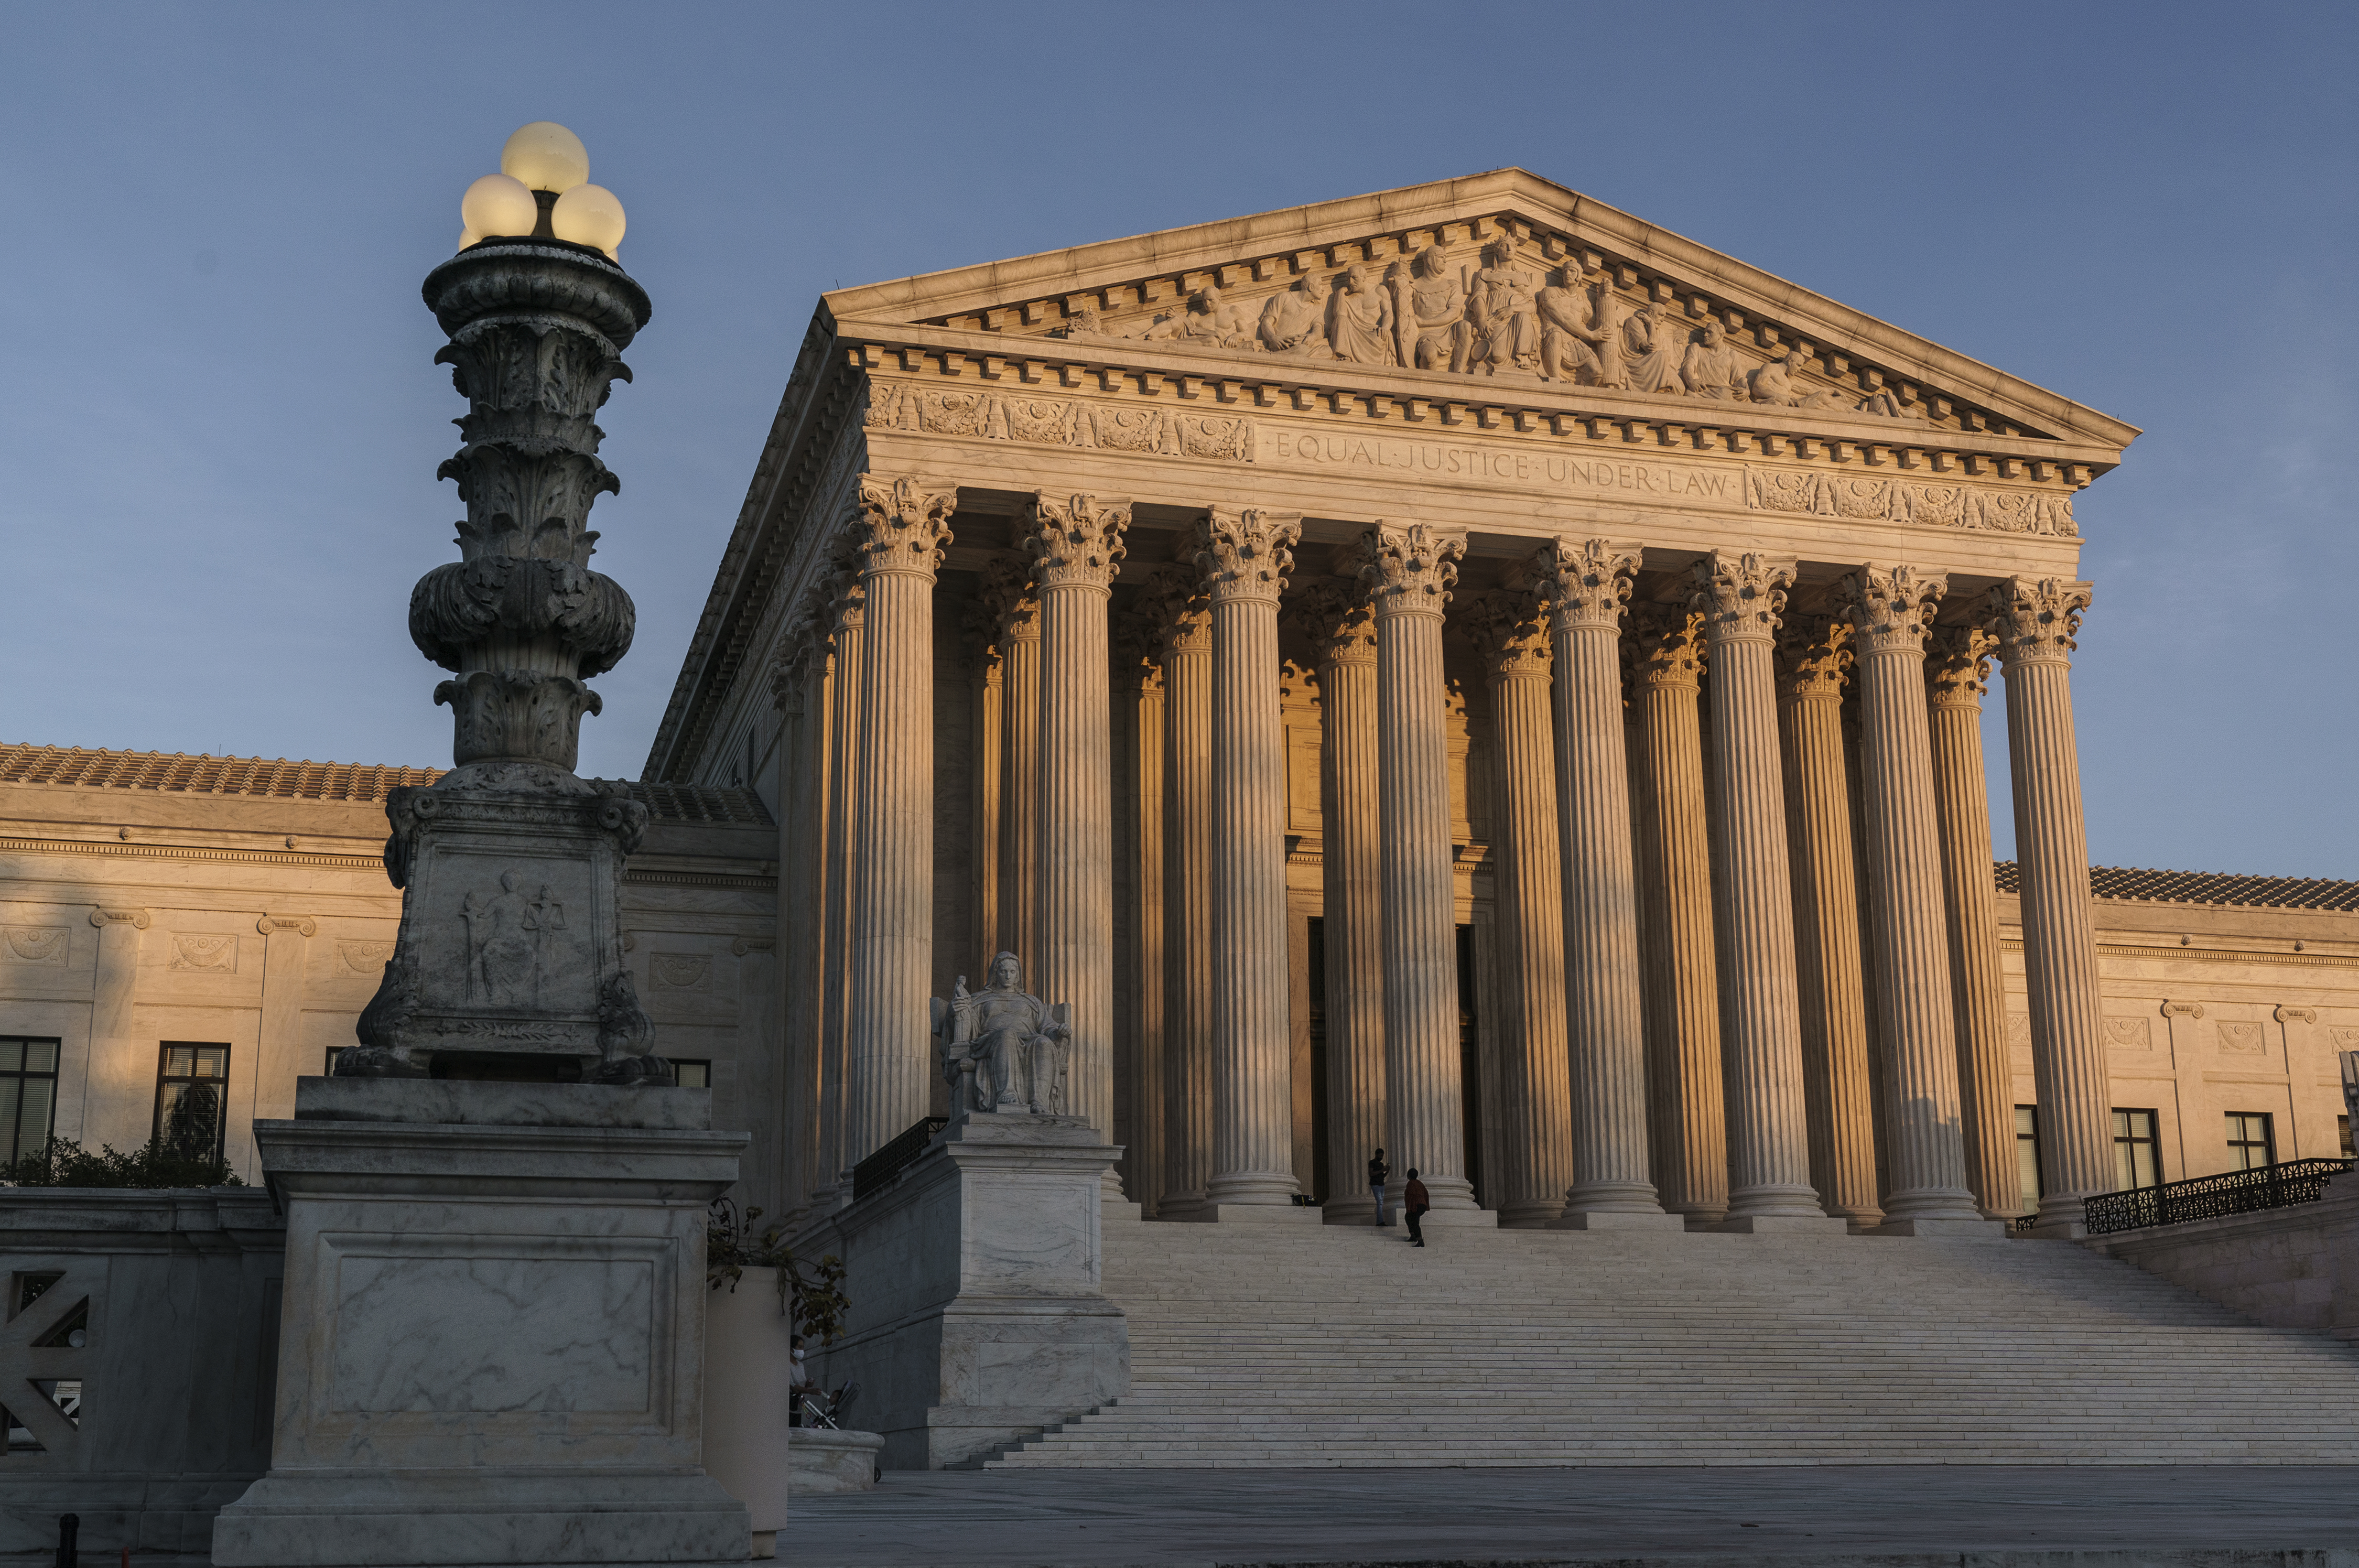 The Supreme Court is seen in Washington, D.C. on Nov. 6, 2020.